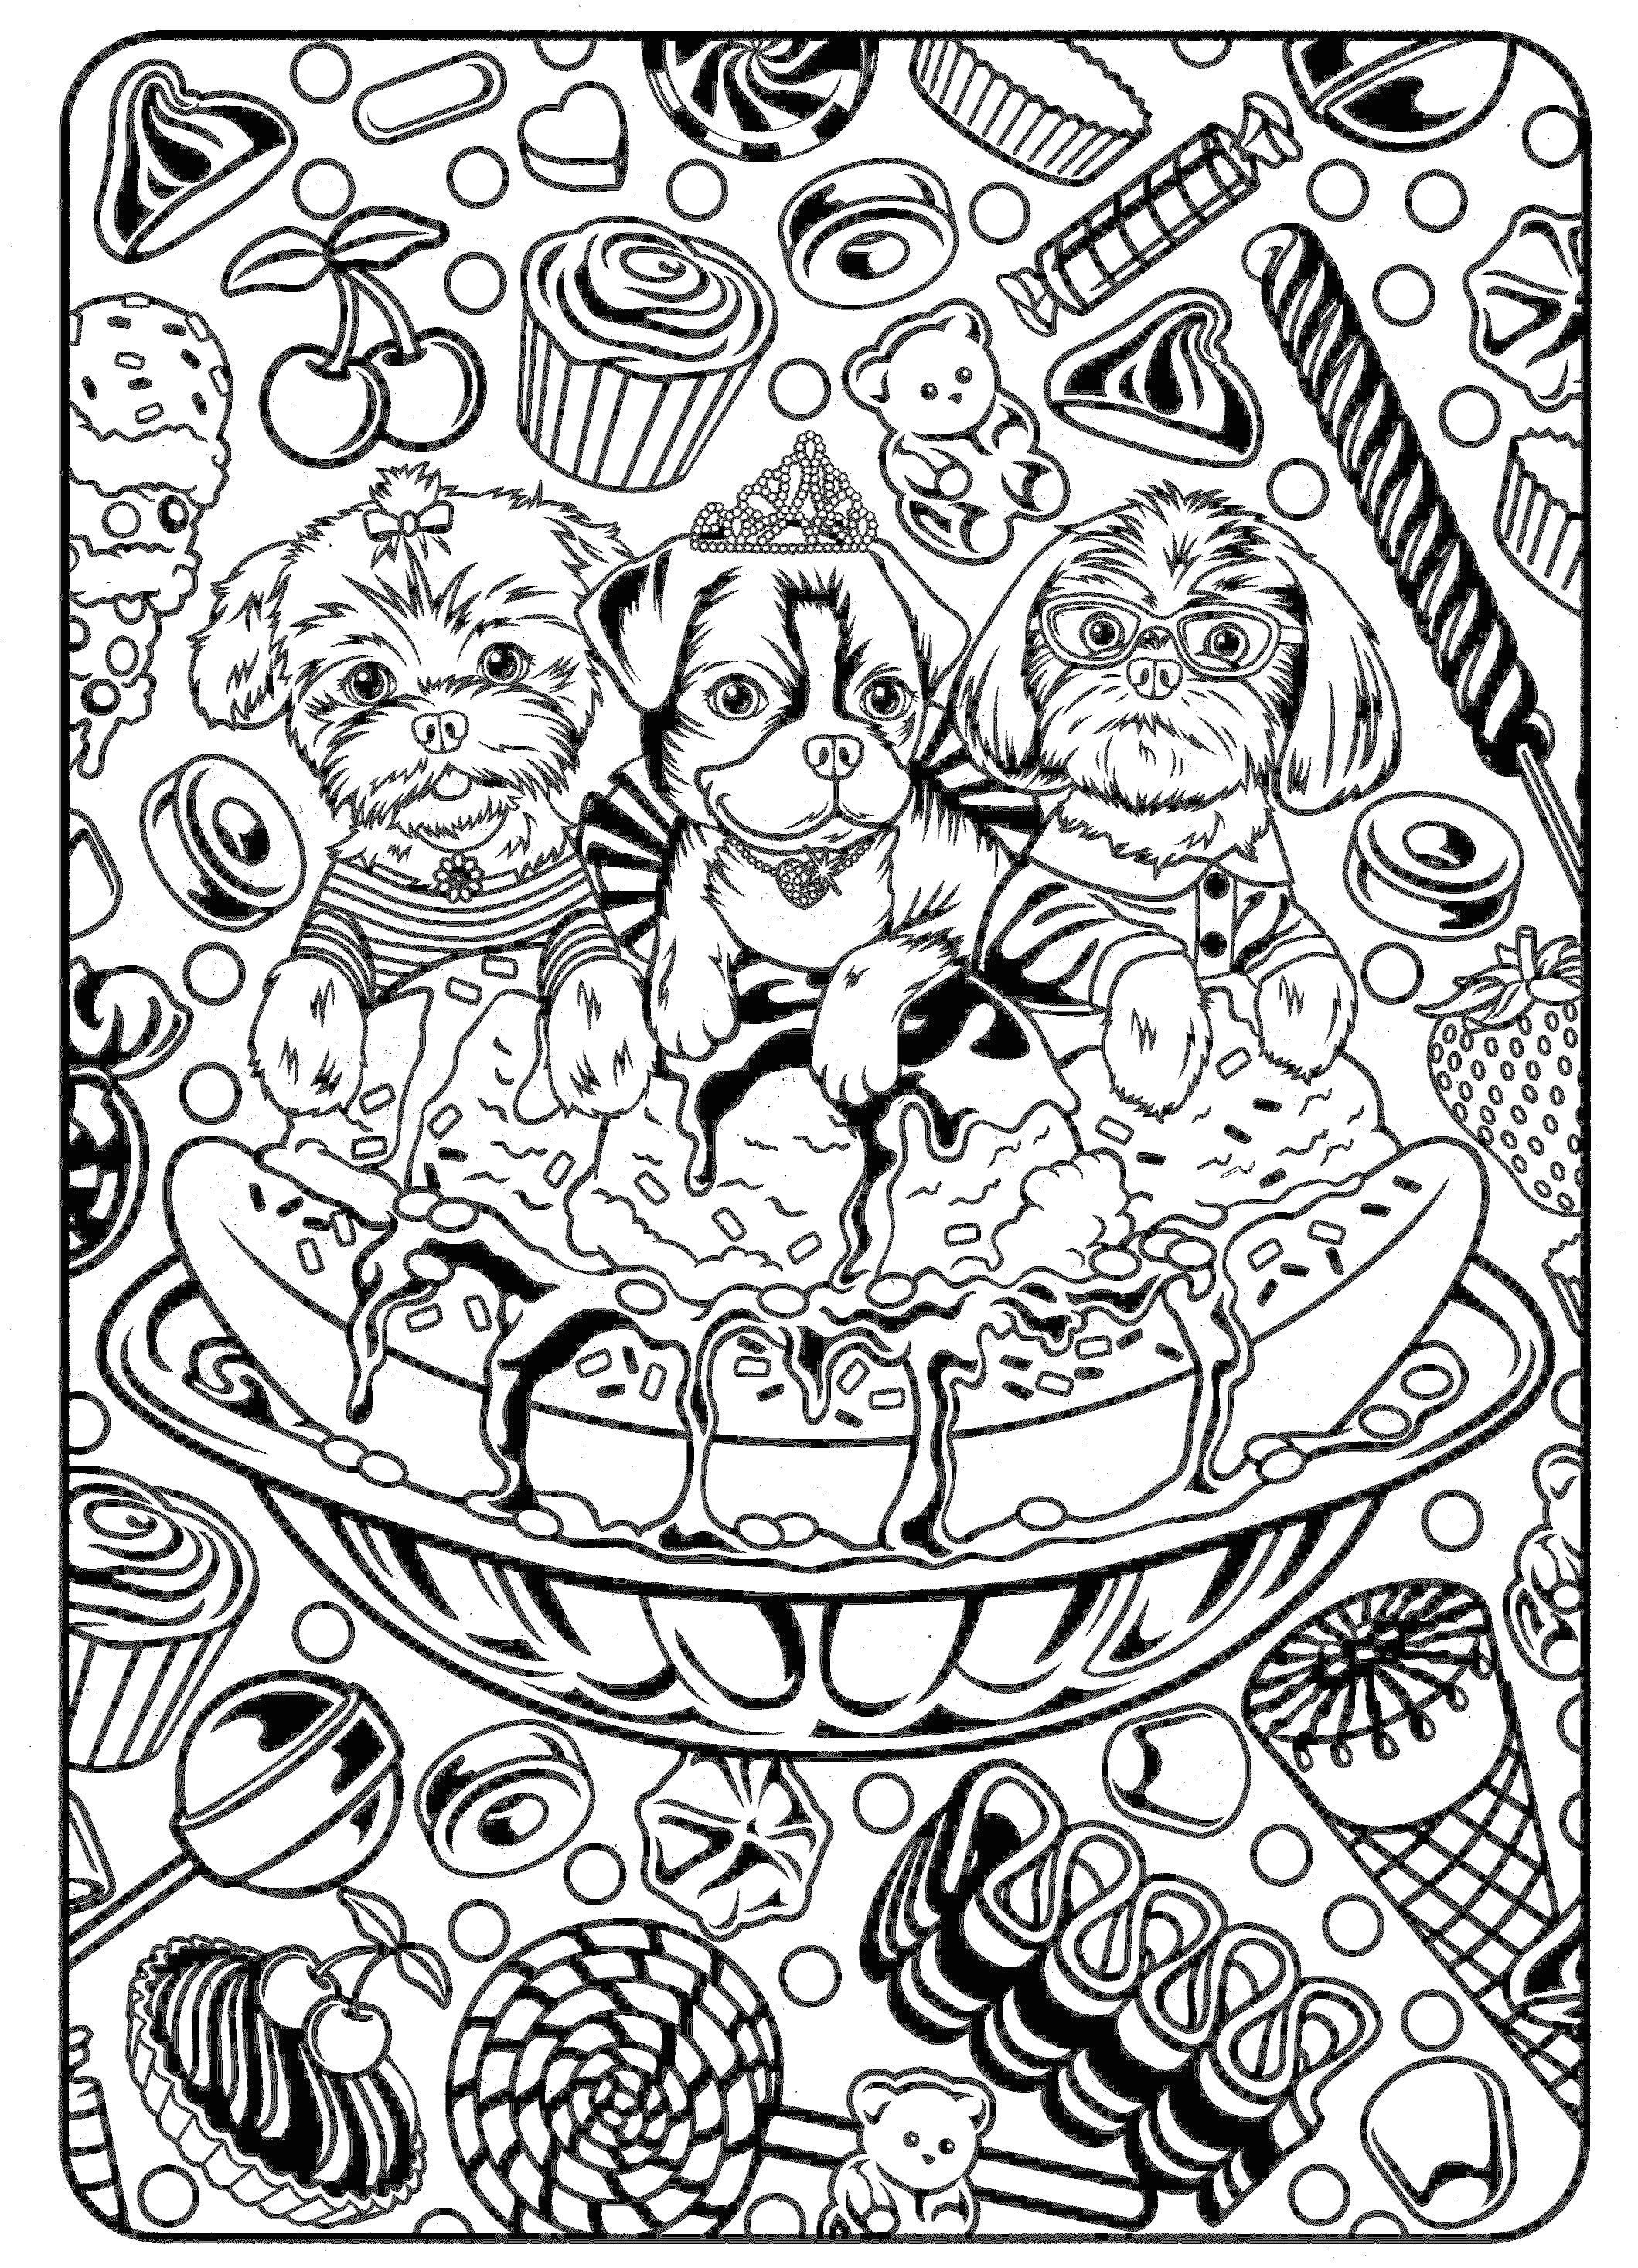 Easy Drawings Jesus Easy to Draw Pictures Of Jesus Free Coloring Pages Elegant Crayola